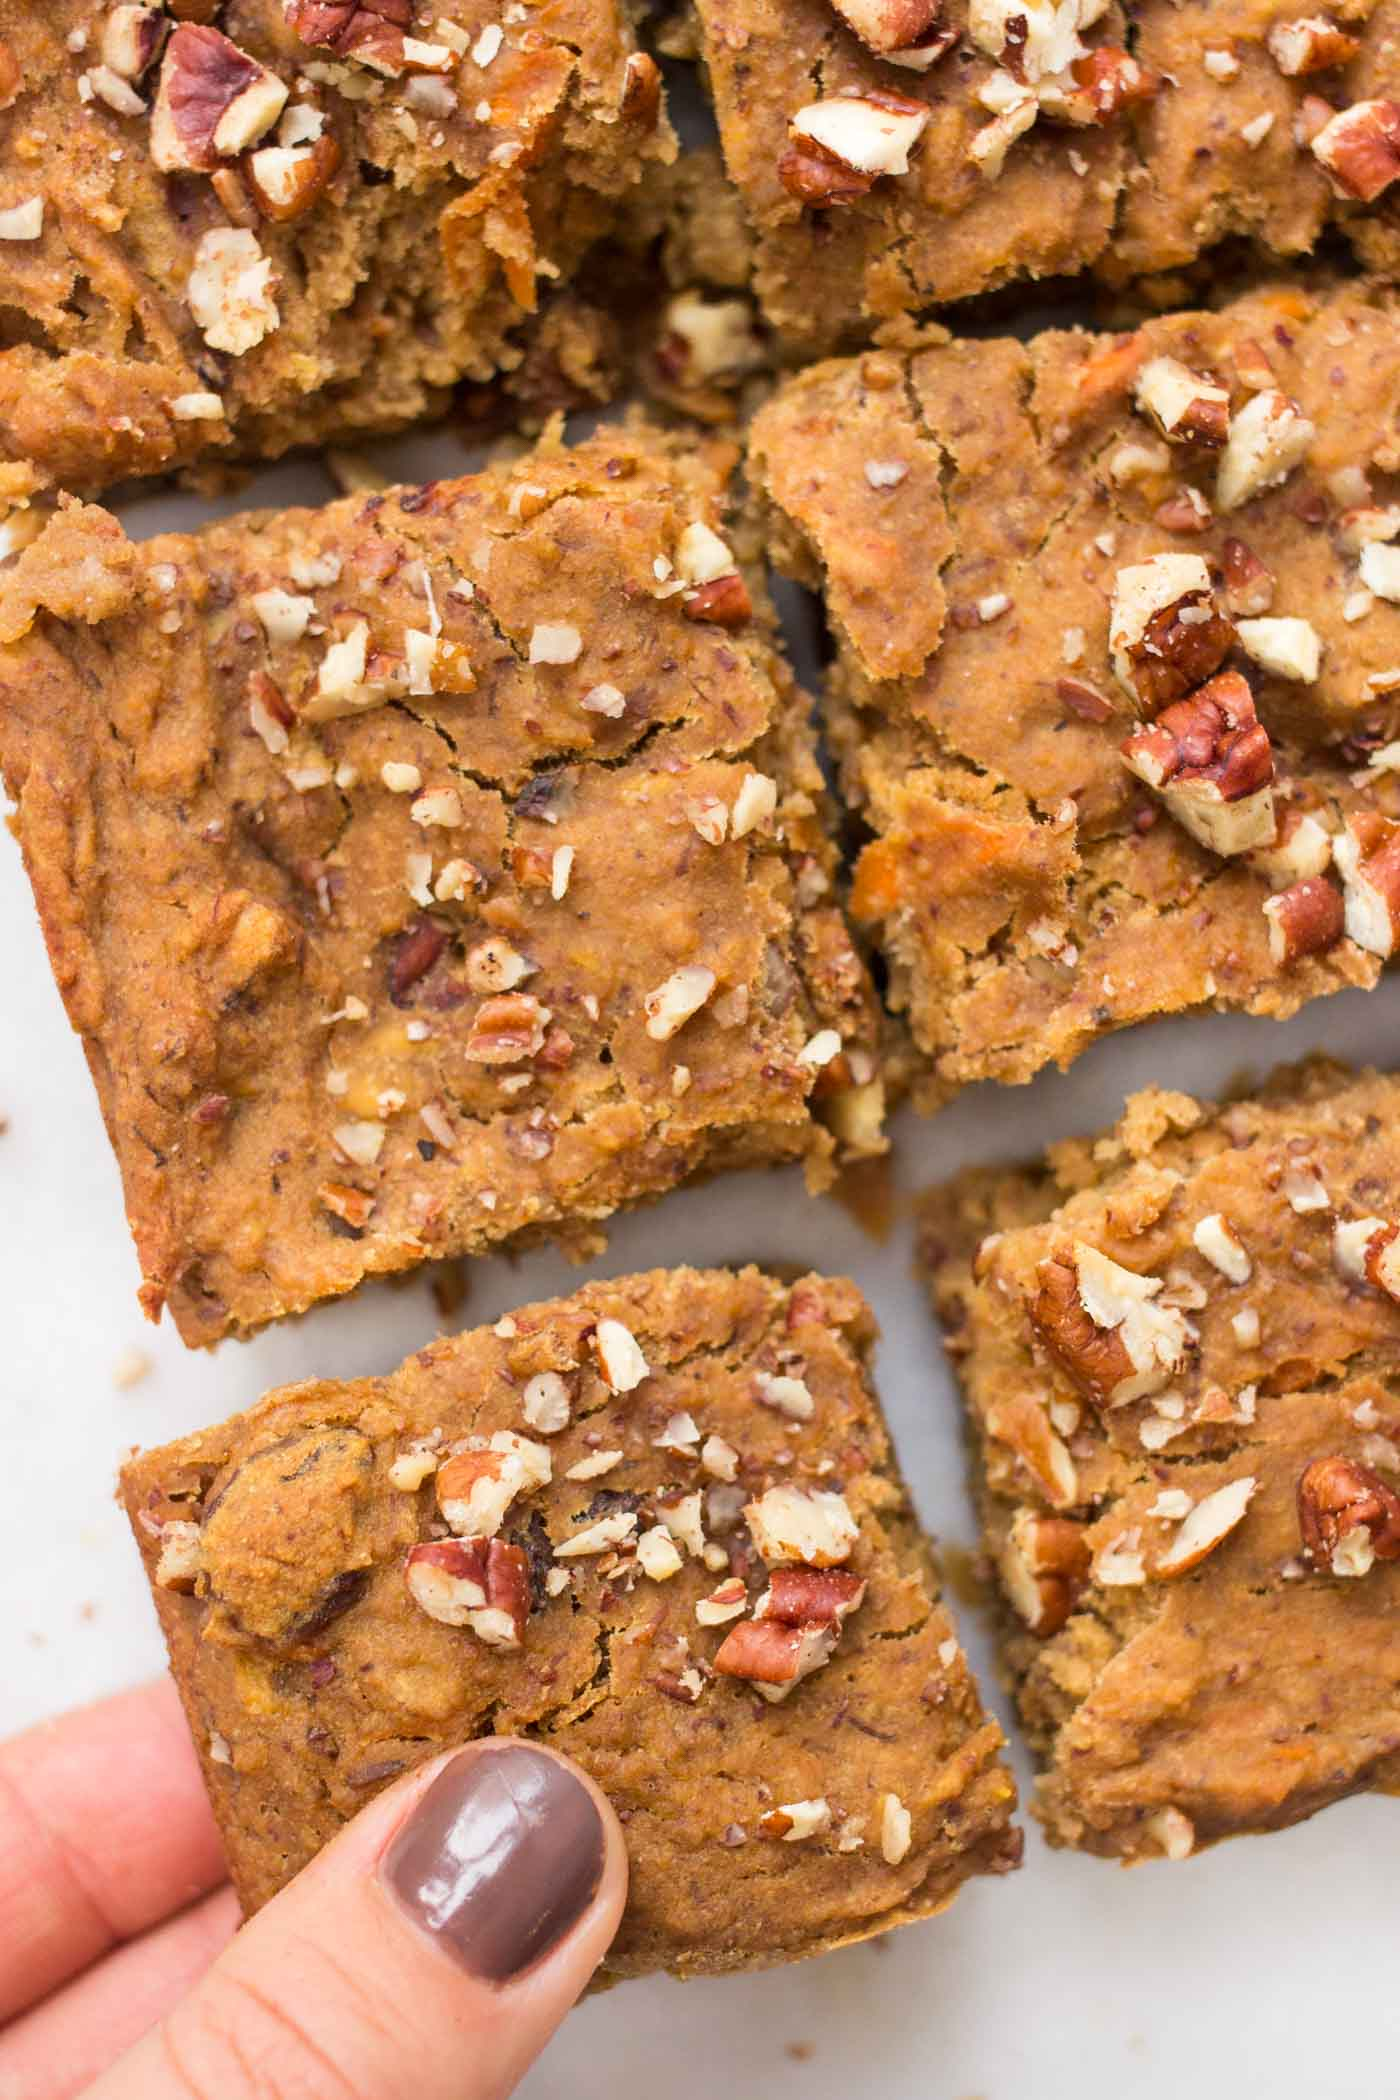 Need a portable breakfast treat? These HIGH-PROTEIN quinoa breakfast bars are perfect! They're naturally sweetened, gluten-free and vegan too!